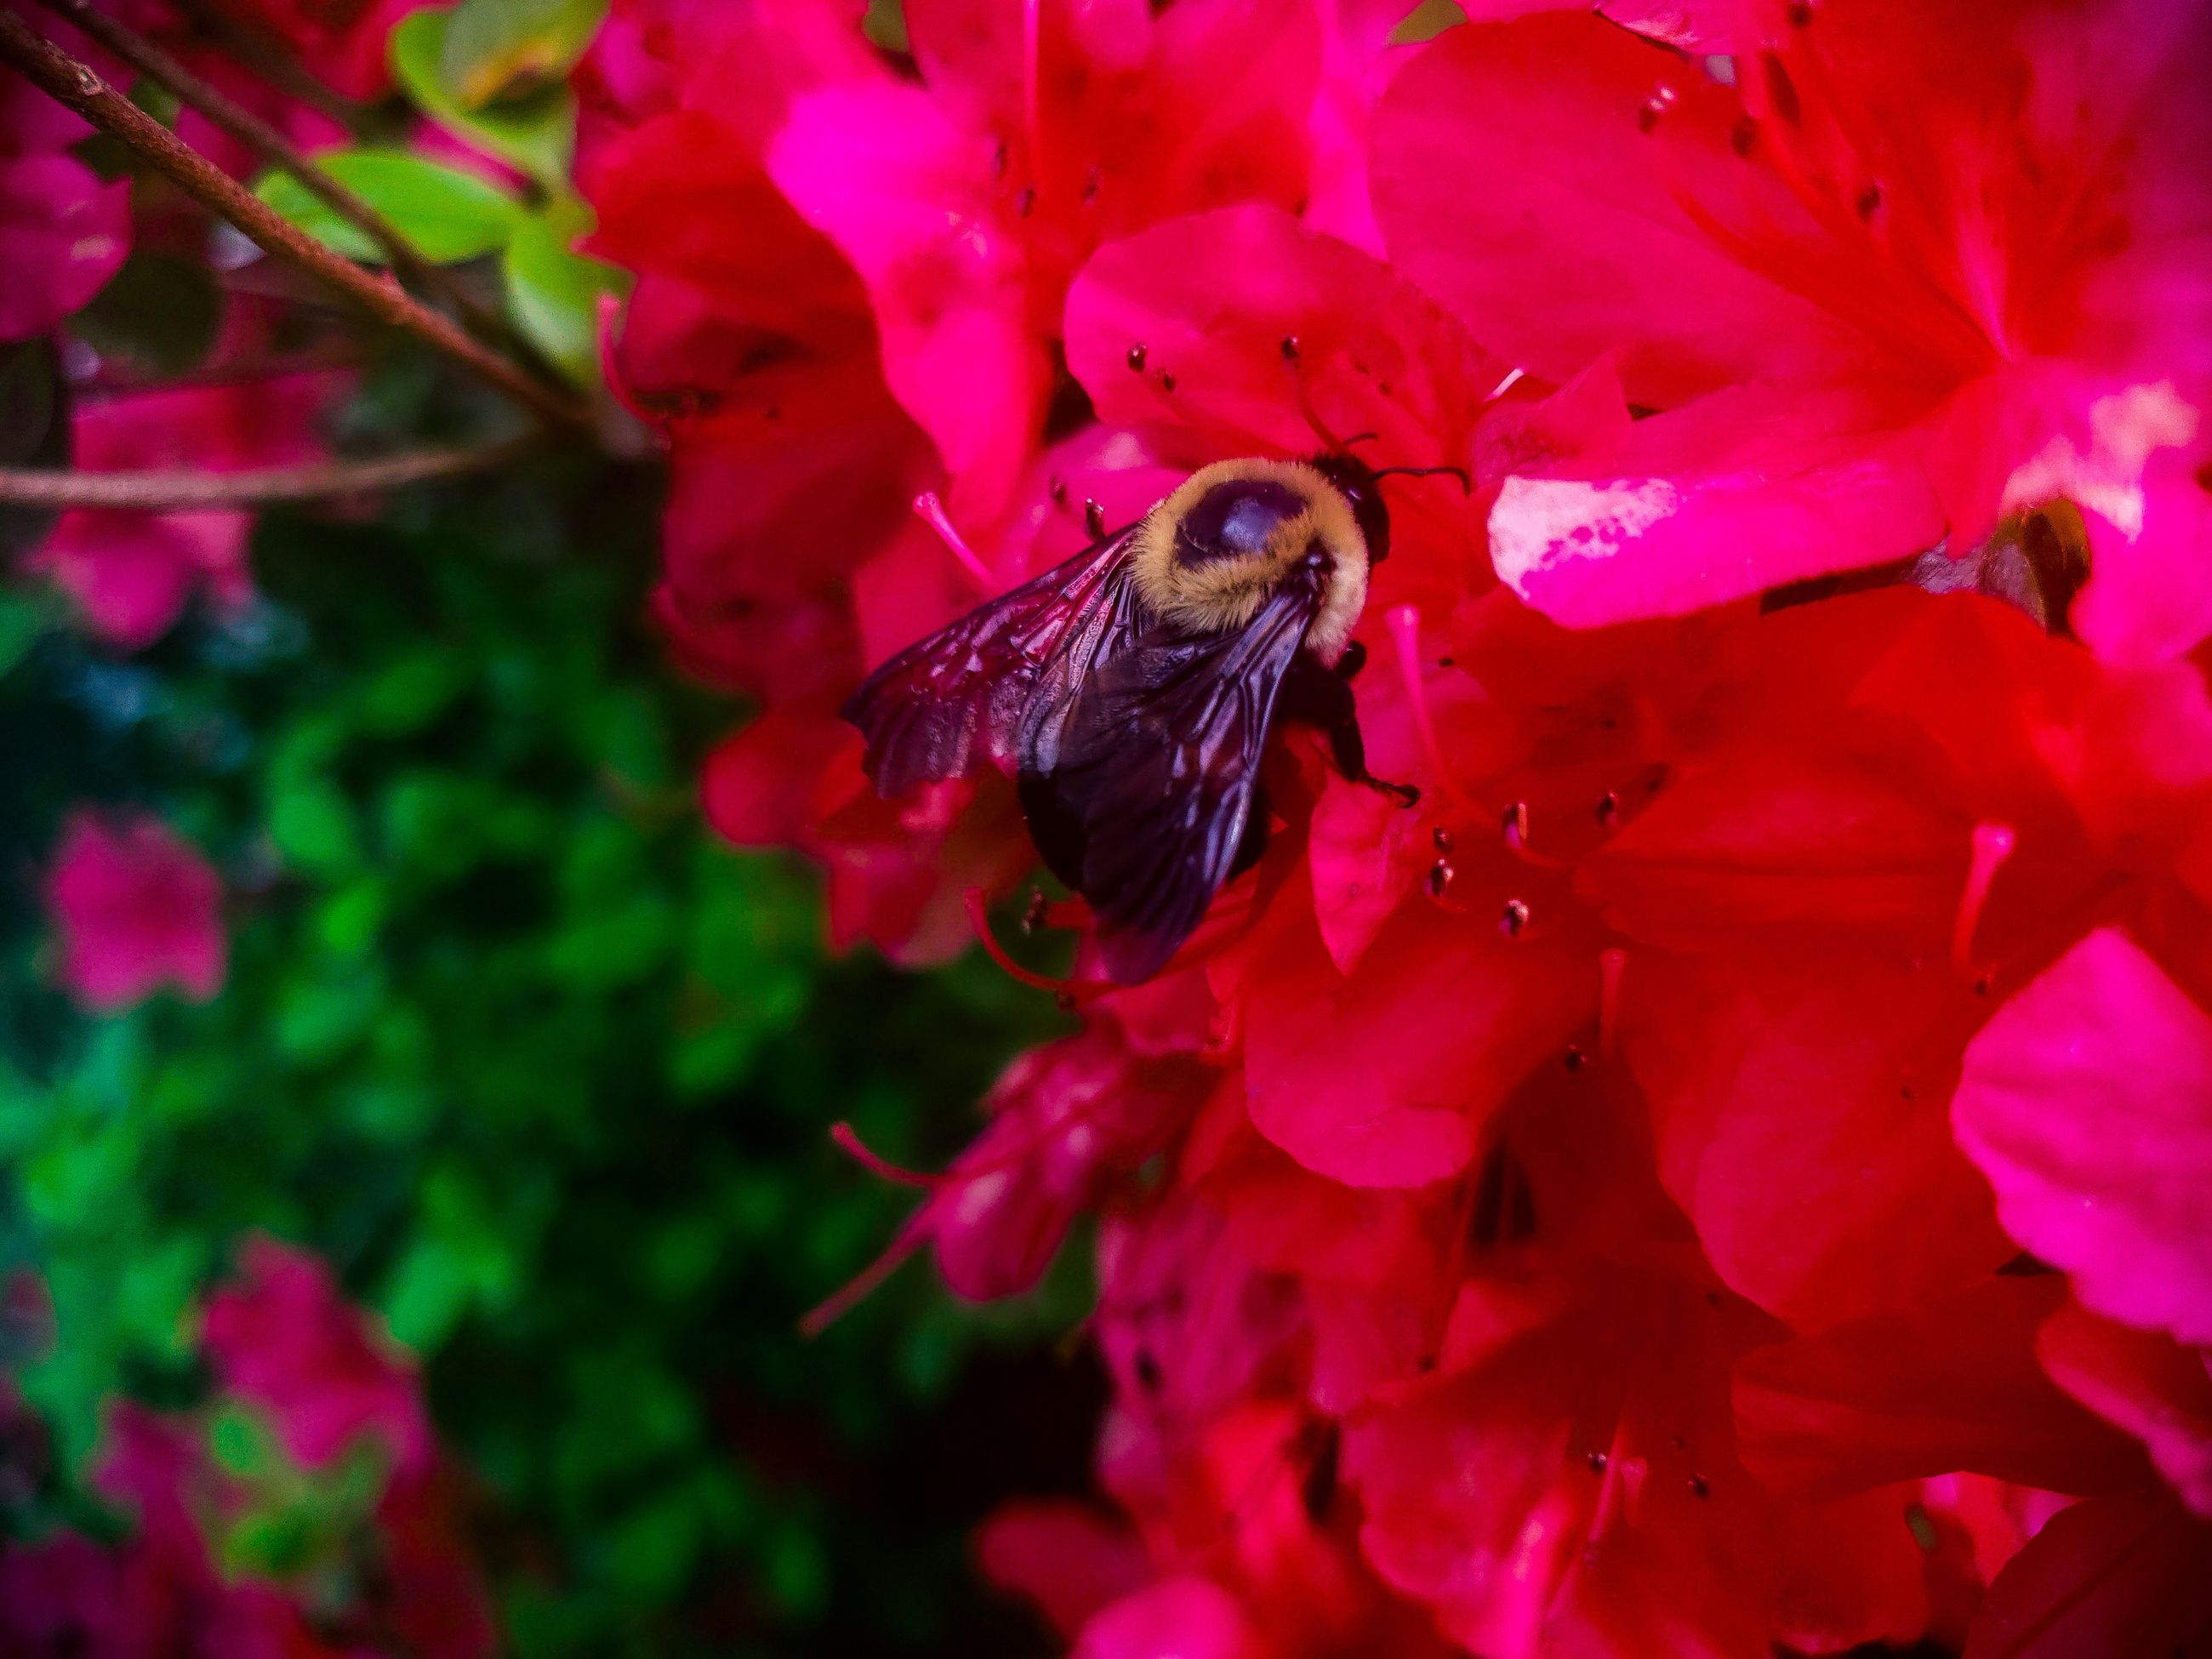 invertebrate, one animal, flower, animal wildlife, animal themes, animal, animals in the wild, insect, flowering plant, plant, petal, beauty in nature, growth, fragility, flower head, vulnerability, freshness, pollination, close-up, pink color, no people, animal wing